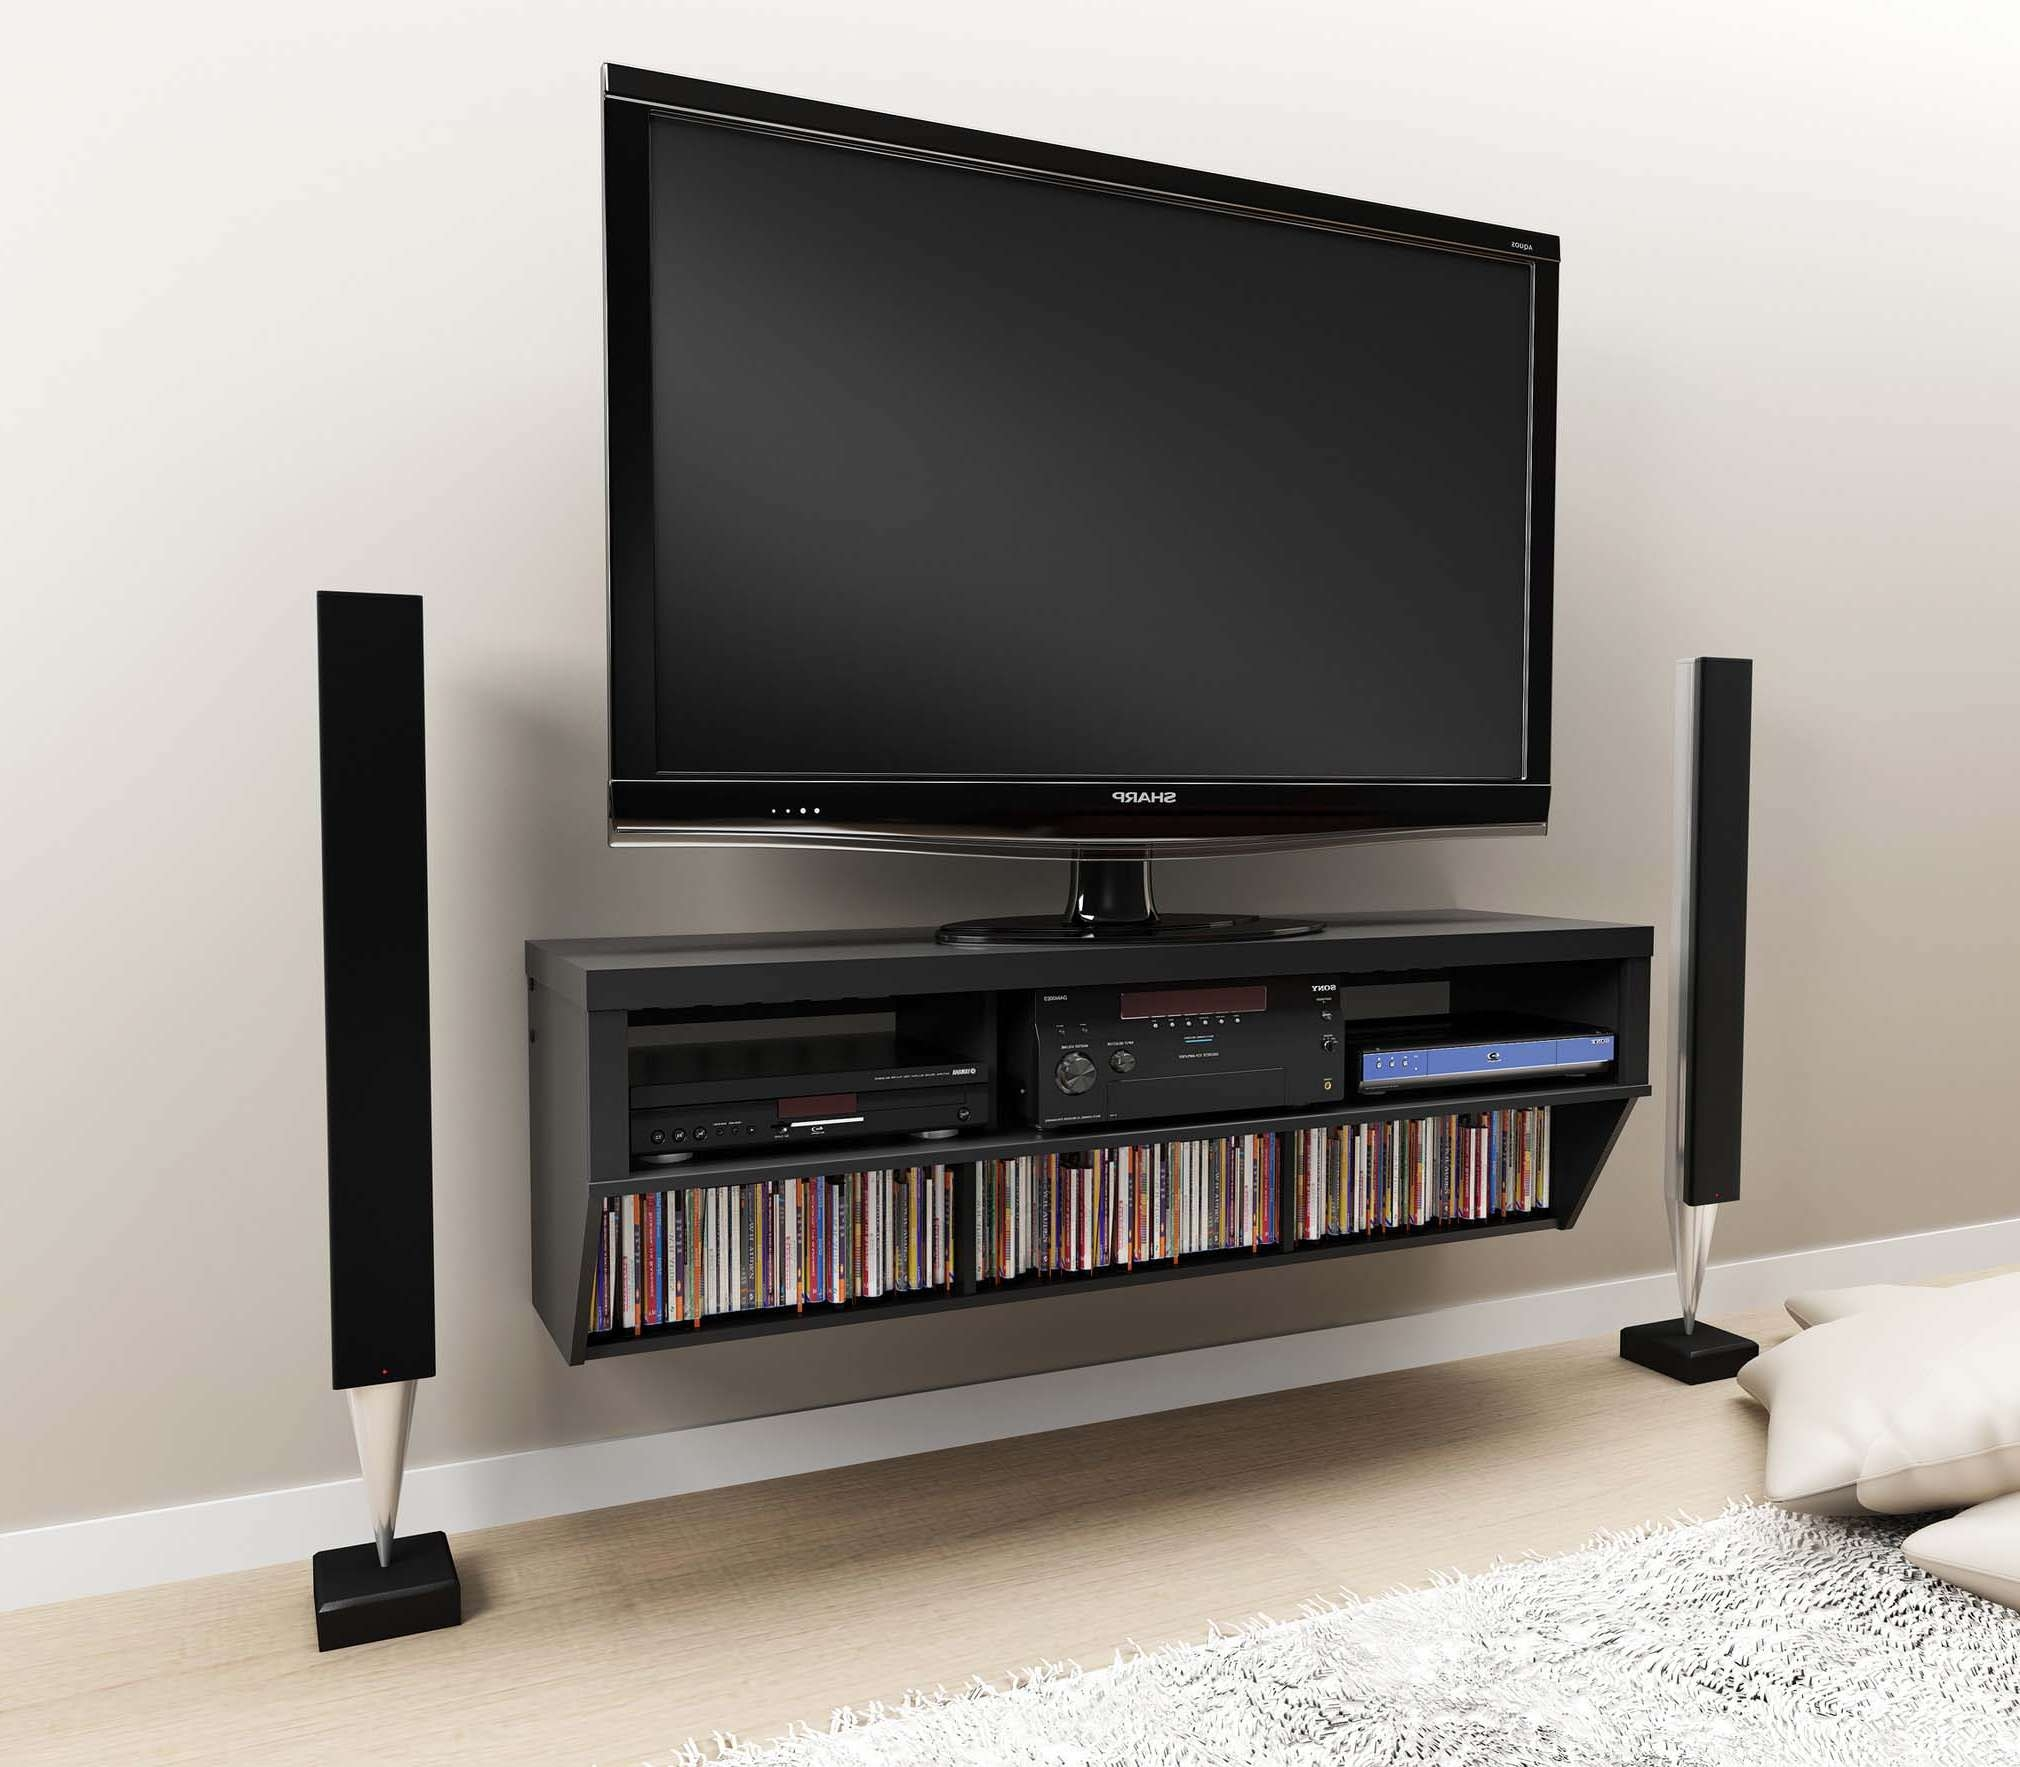 Tv Wall Mount With Shelf Mounted Entertainment Console Media Regarding Wall Mounted Tv Stands For Flat Screens (View 2 of 15)